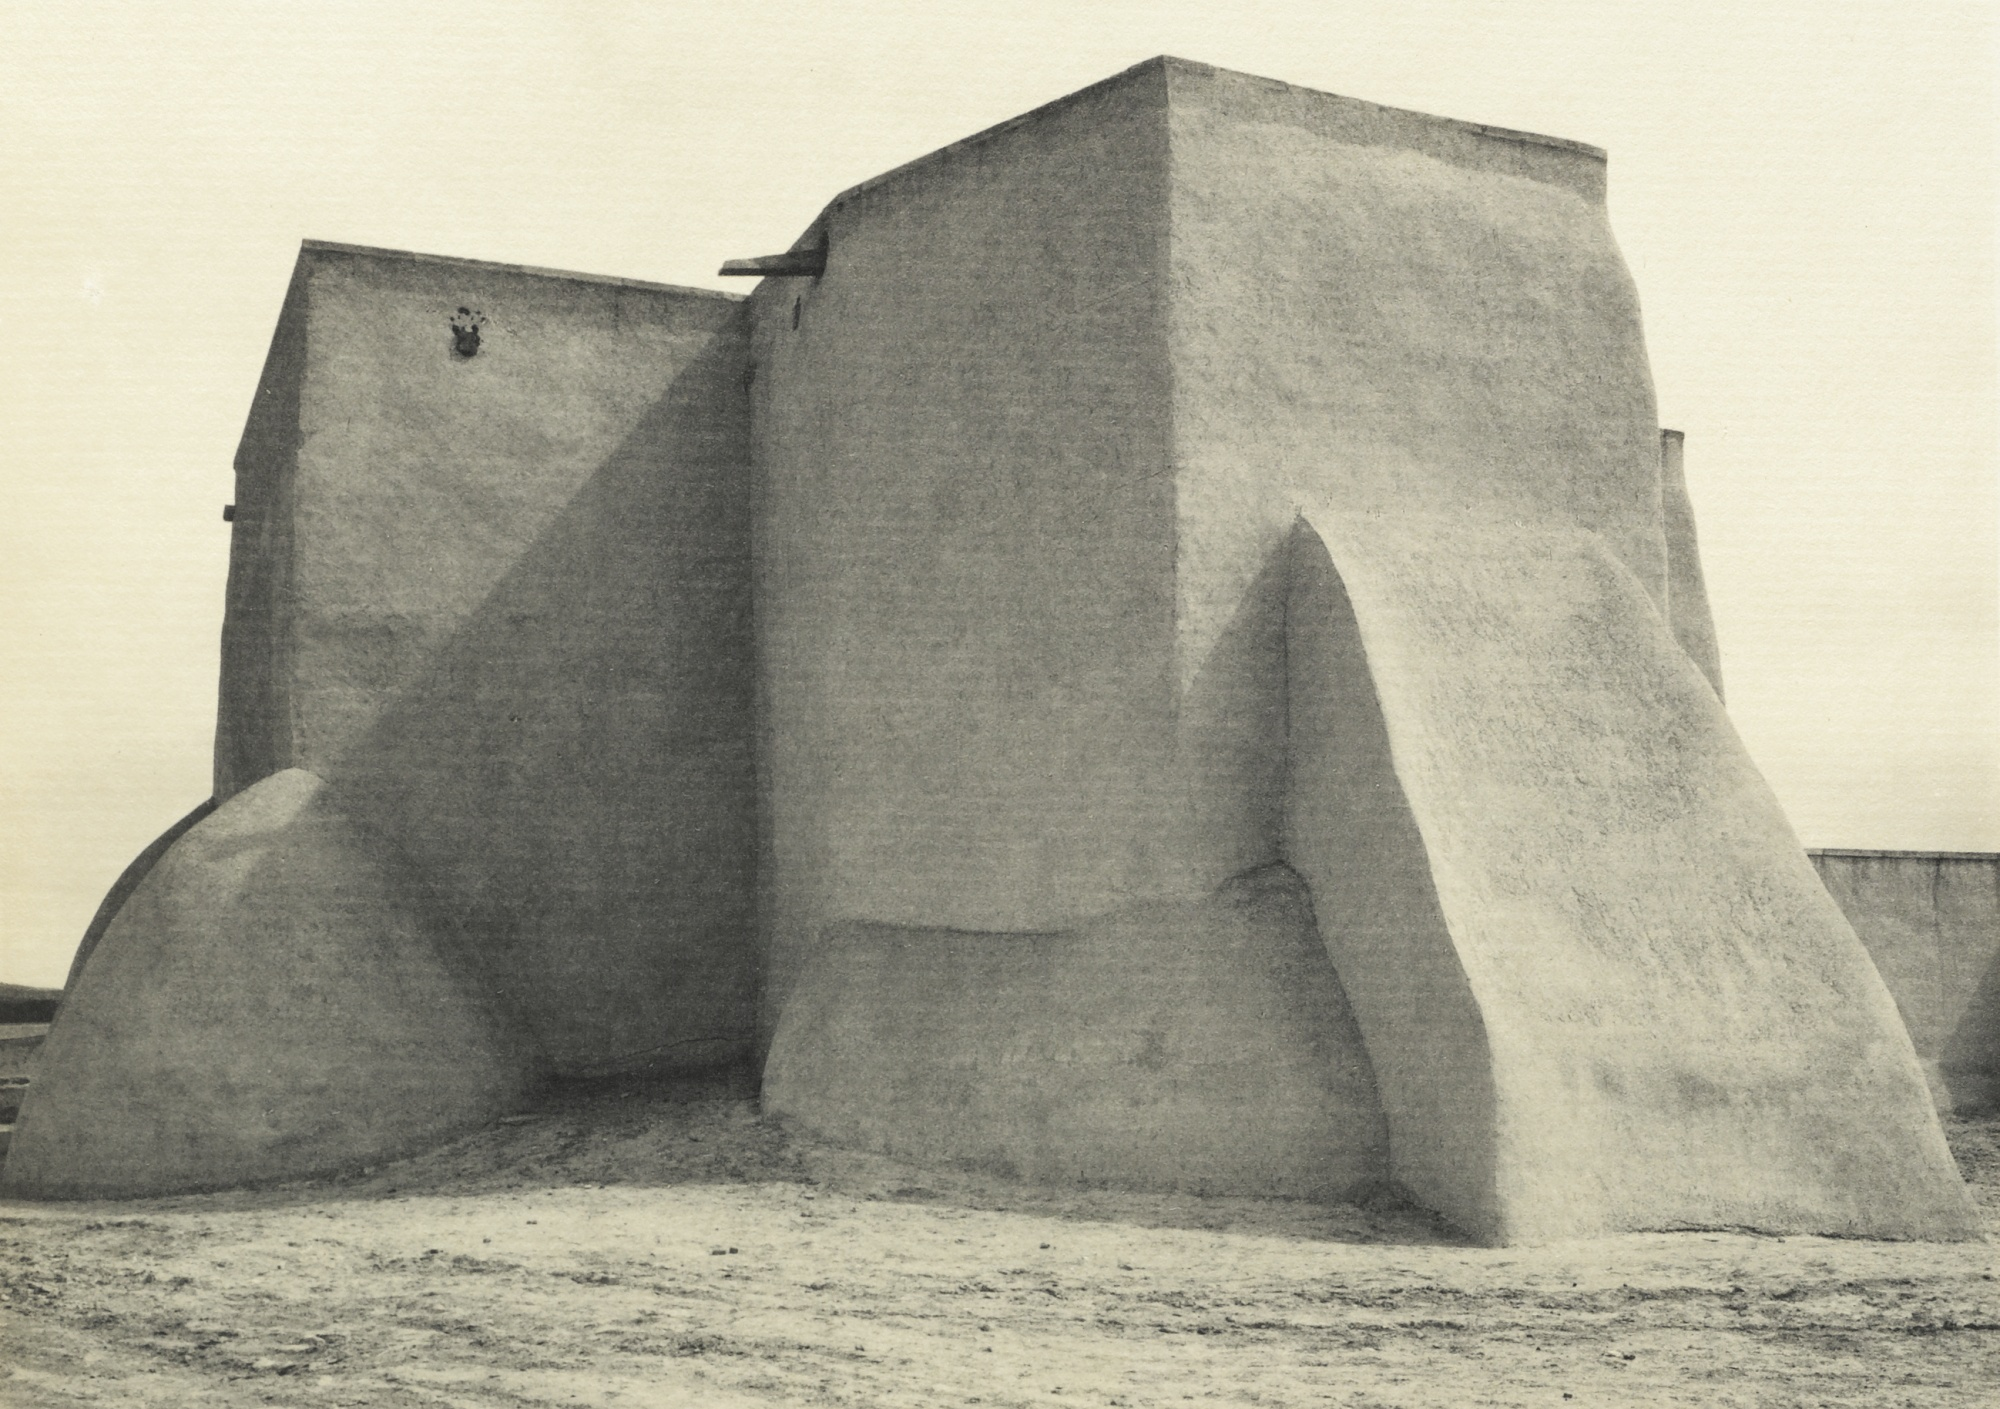 Ansel Adams' Taos Pueblo - Plate XII - Church at Ranchos de Taos